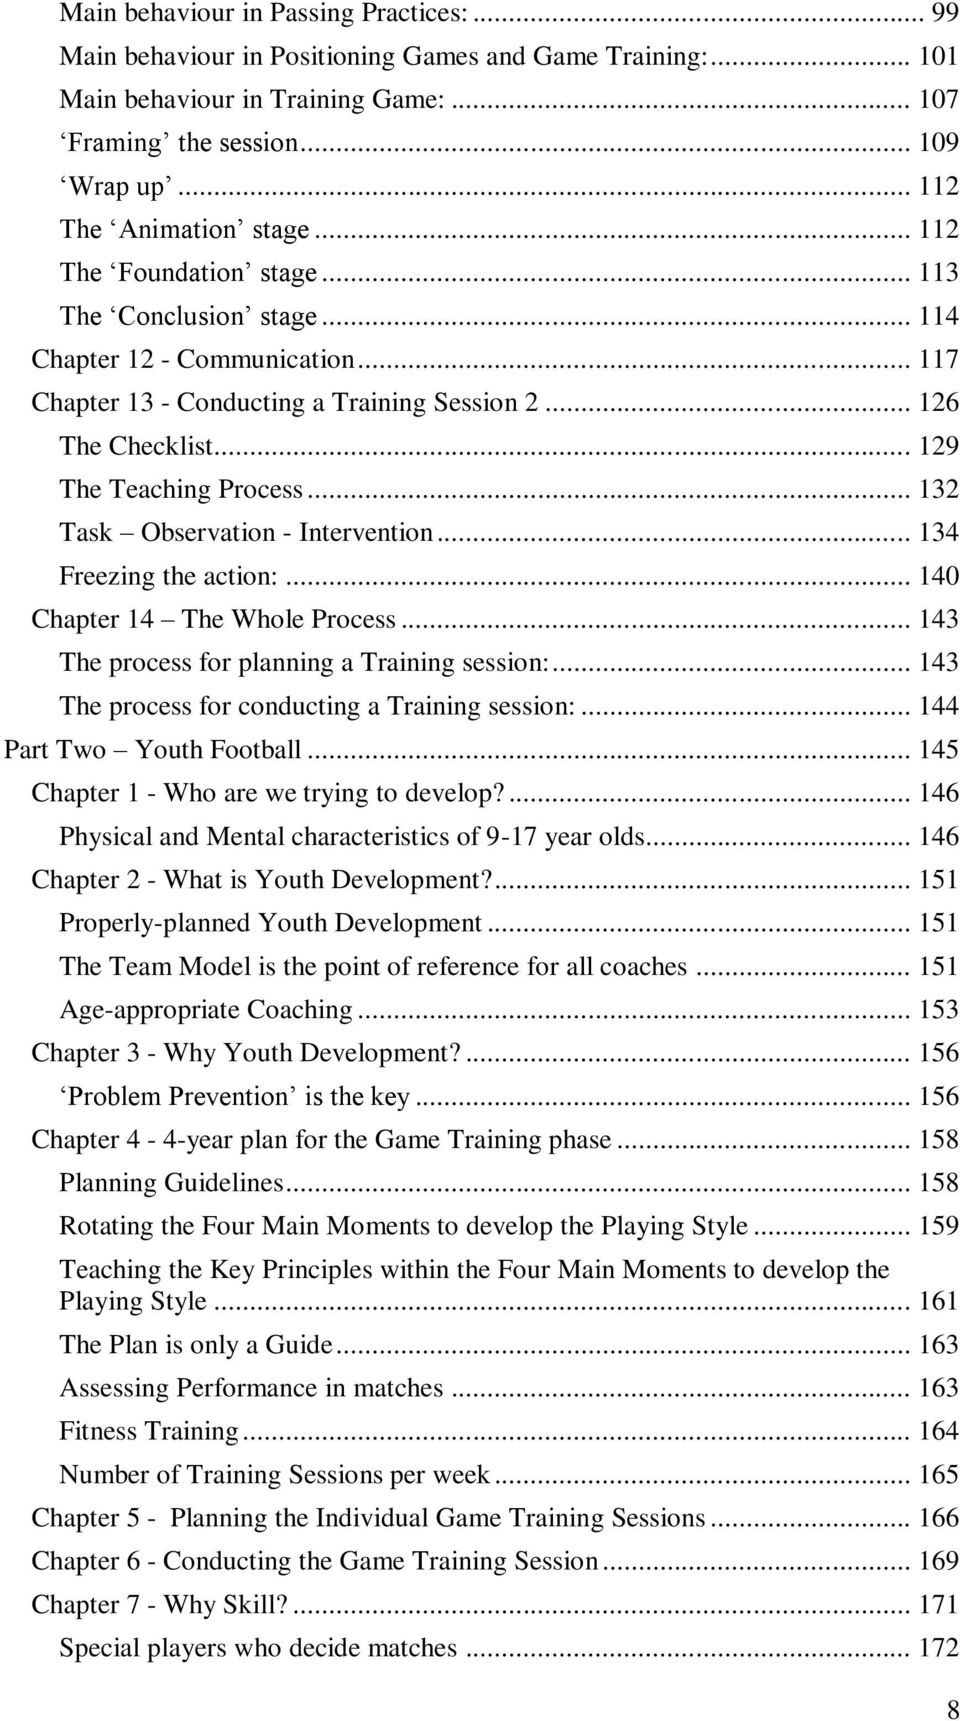 .. 129 The Teaching Process... 132 Task Observation - Intervention... 134 Freezing the action:... 140 Chapter 14 The Whole Process... 143 The process for planning a Training session:.